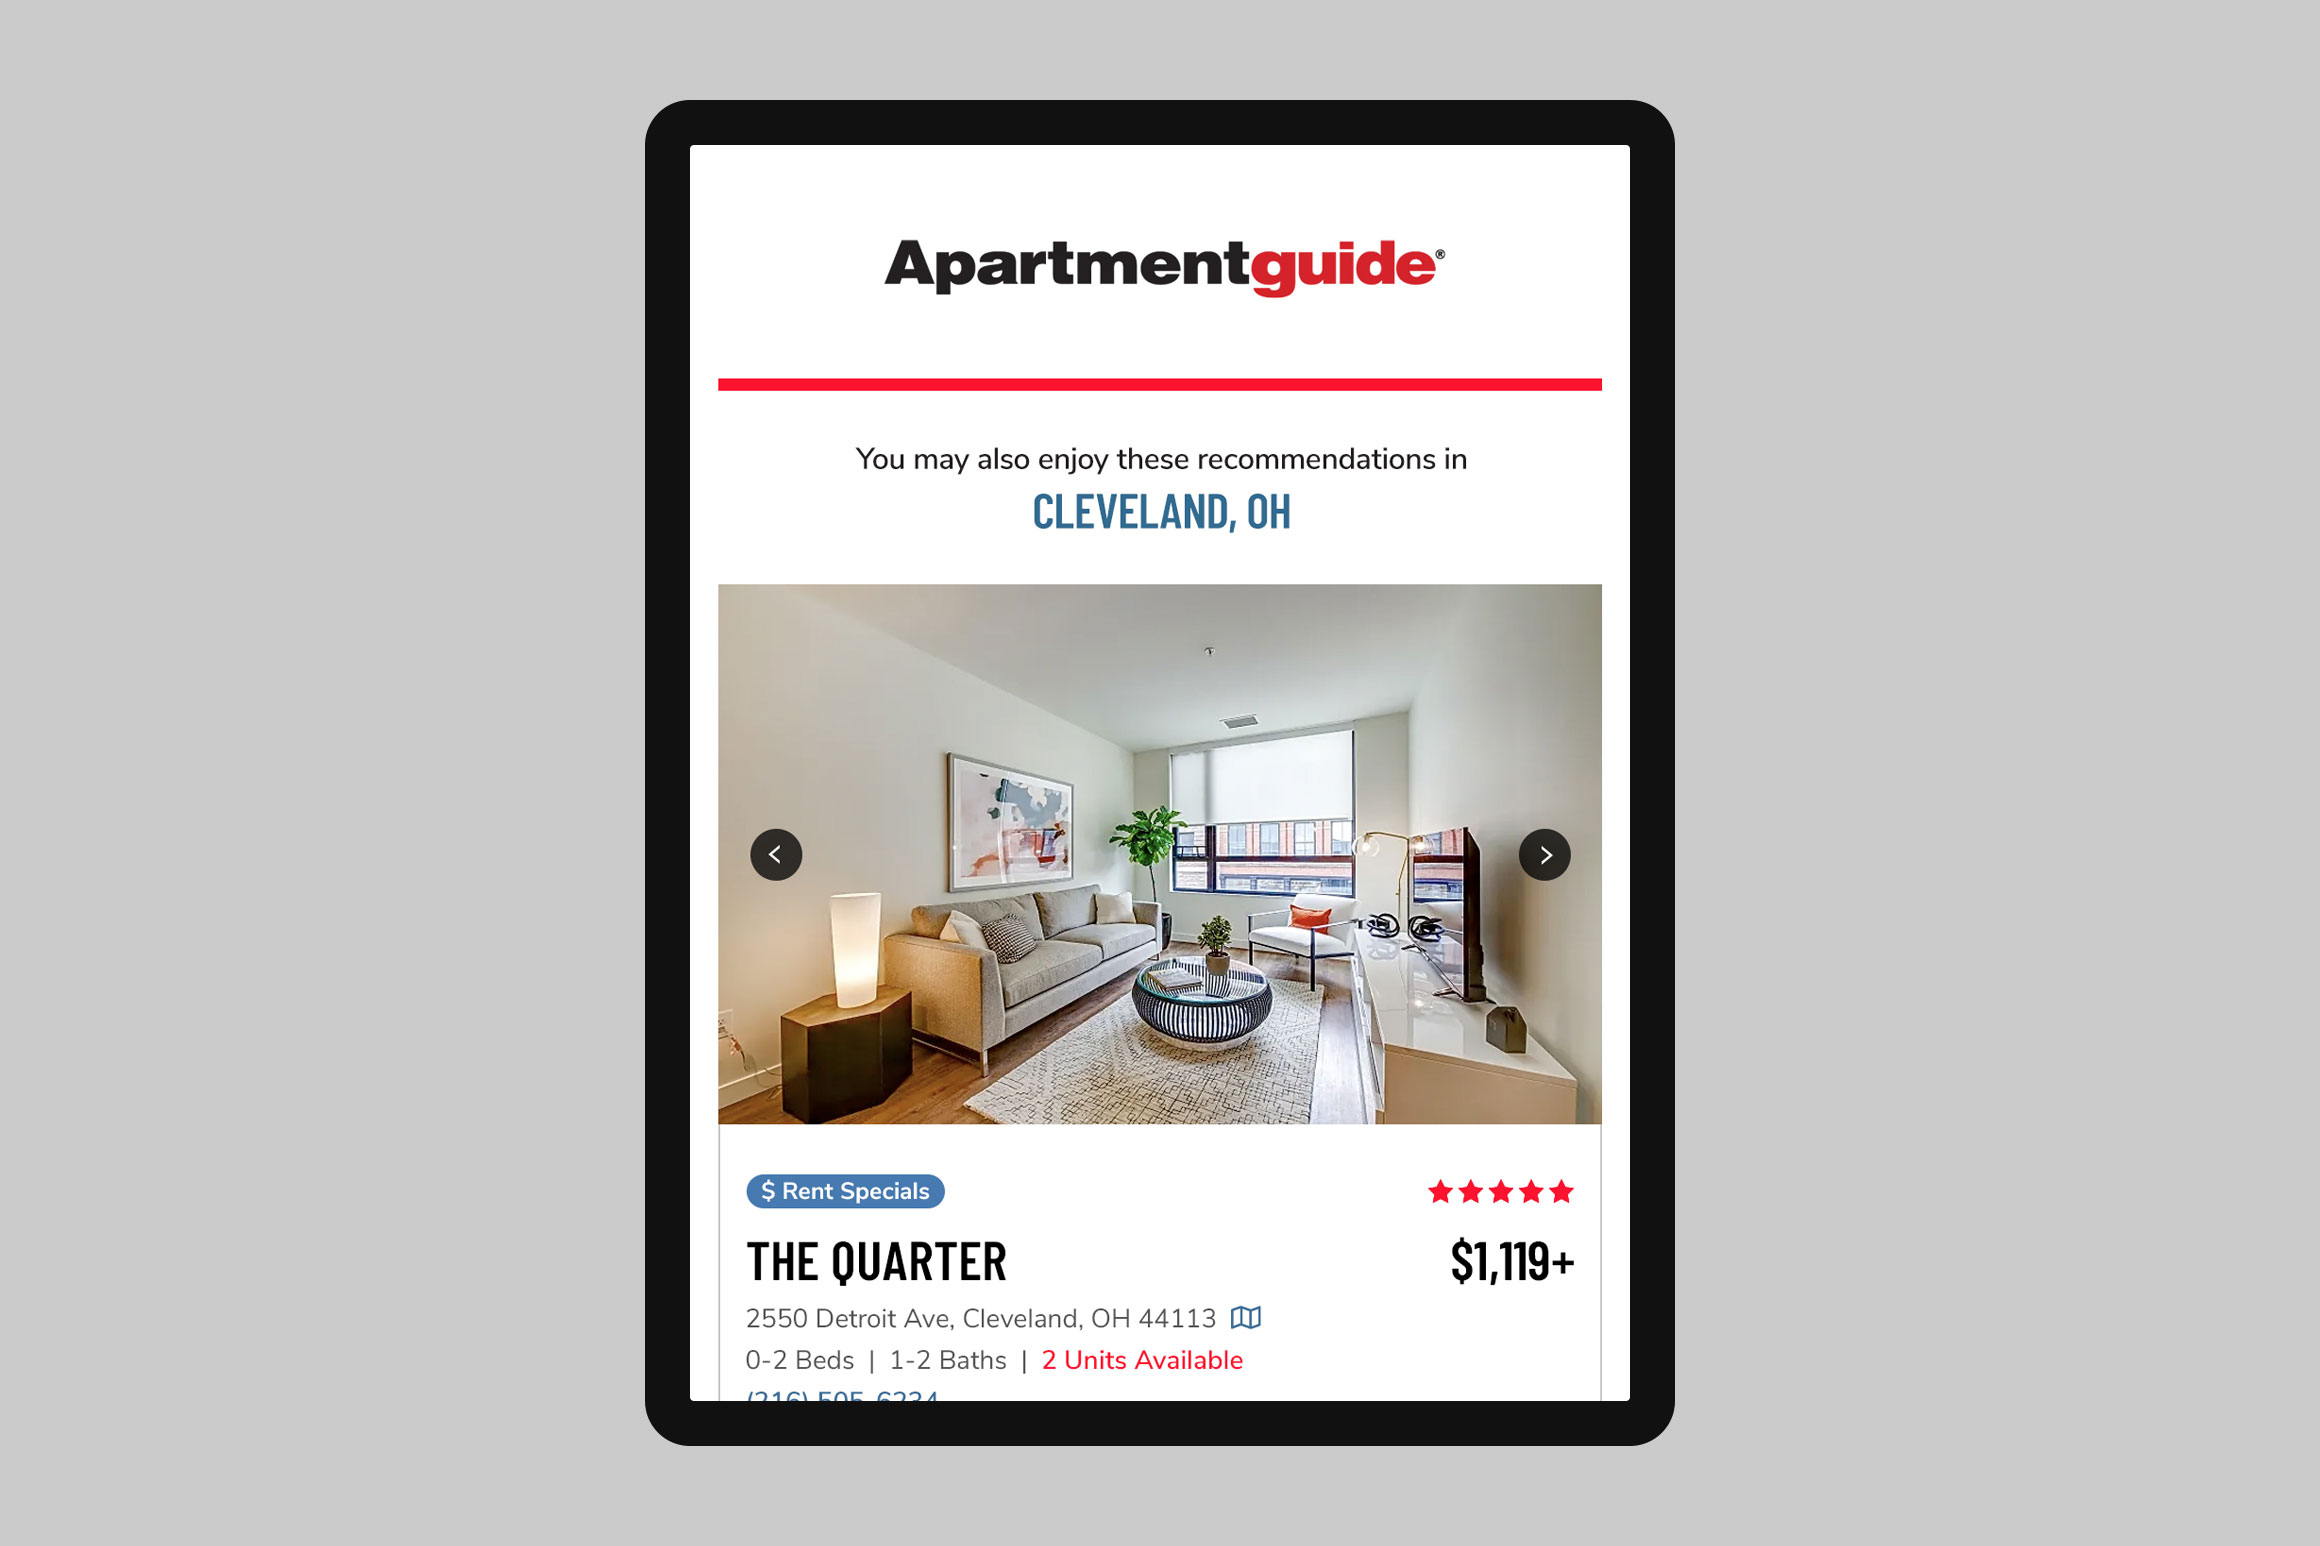 Apartment Guide Recommendations Email